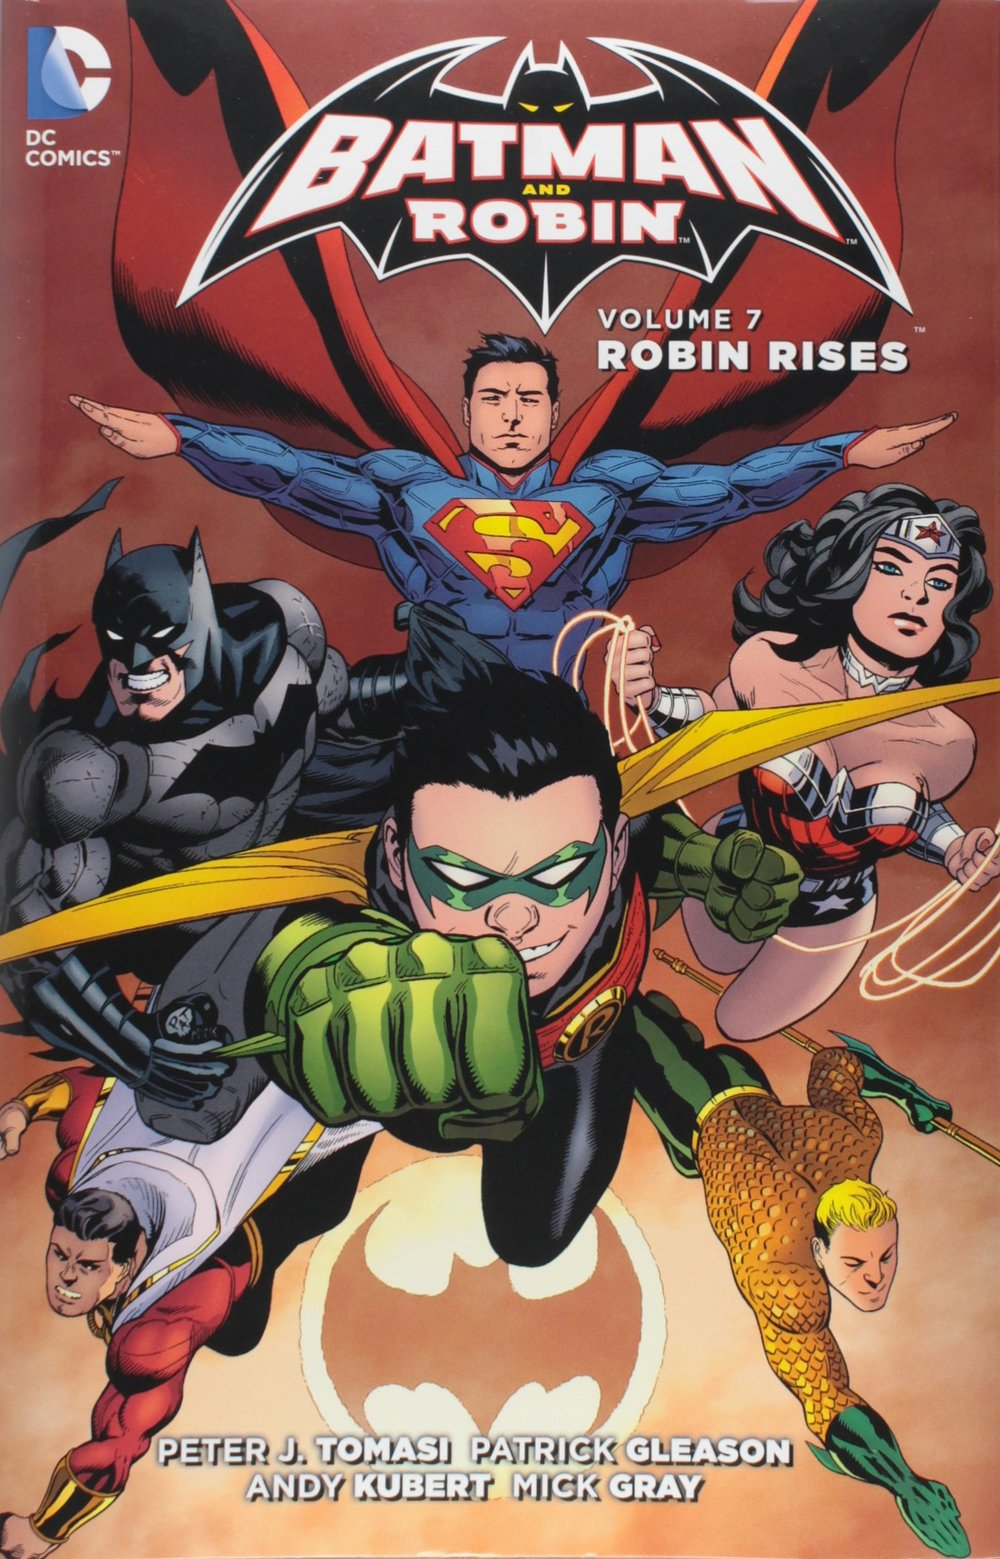 Batman and Robin: Robin Rises